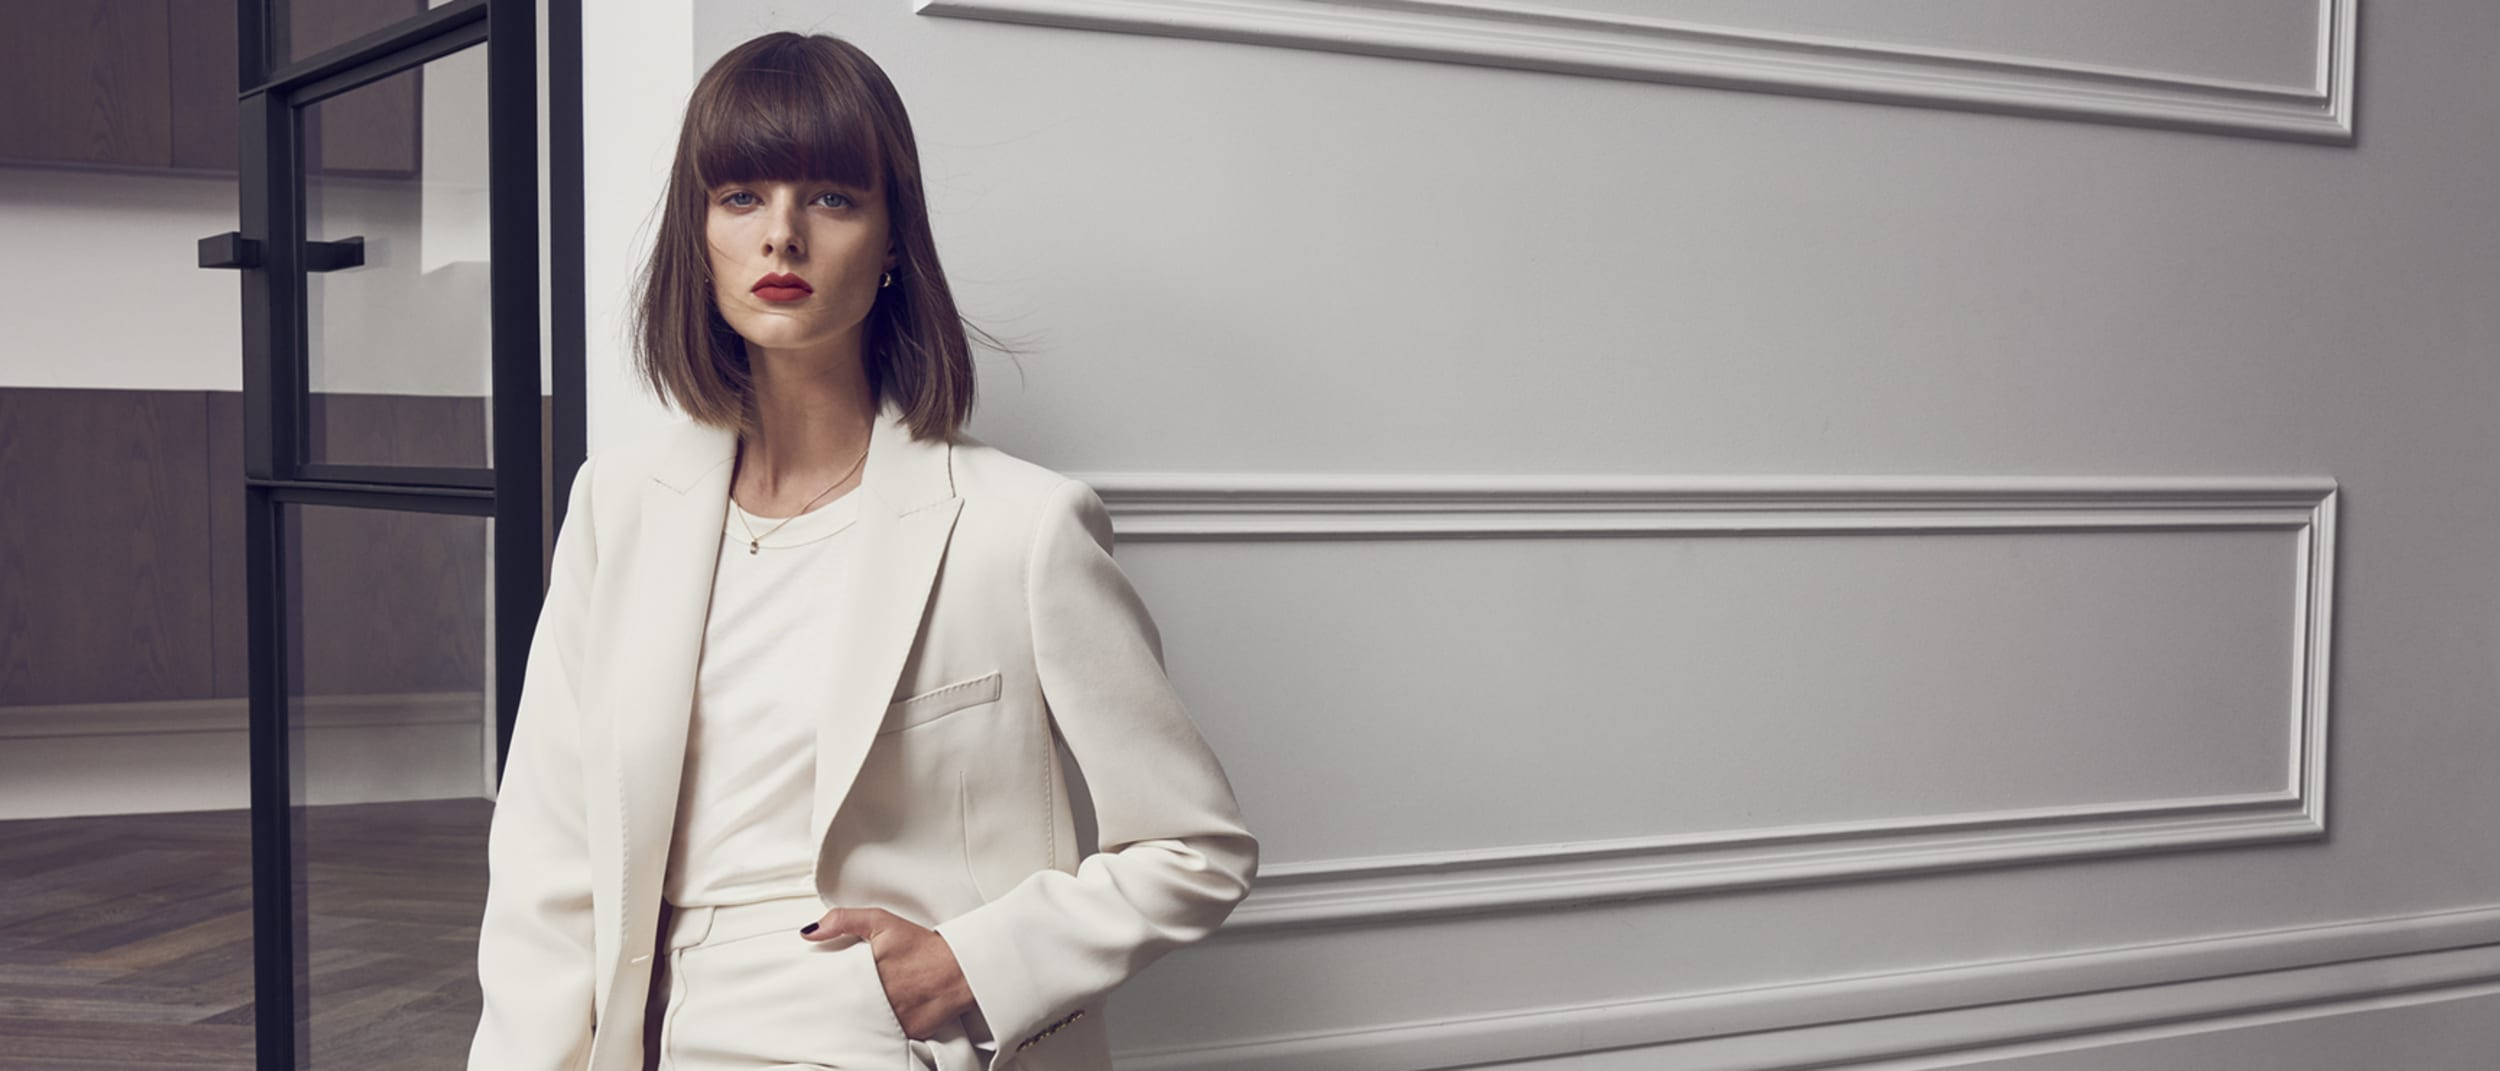 Witchery's 50th Anniversary Capsule Collection is now in stores